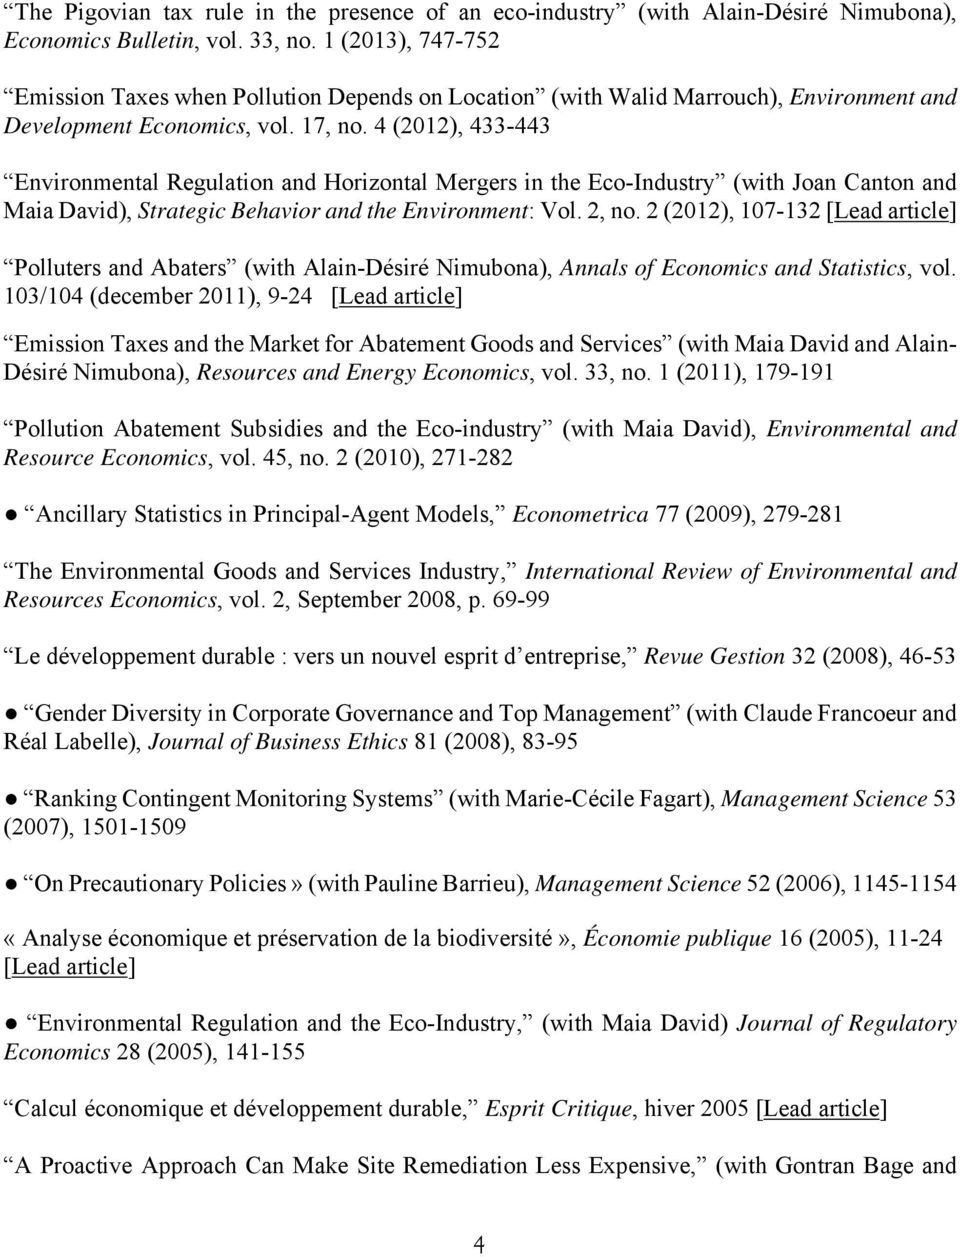 4 (2012), 433-443 Environmental Regulation and Horizontal Mergers in the Eco-Industry (with Joan Canton and Maia David), Strategic Behavior and the Environment: Vol. 2, no.